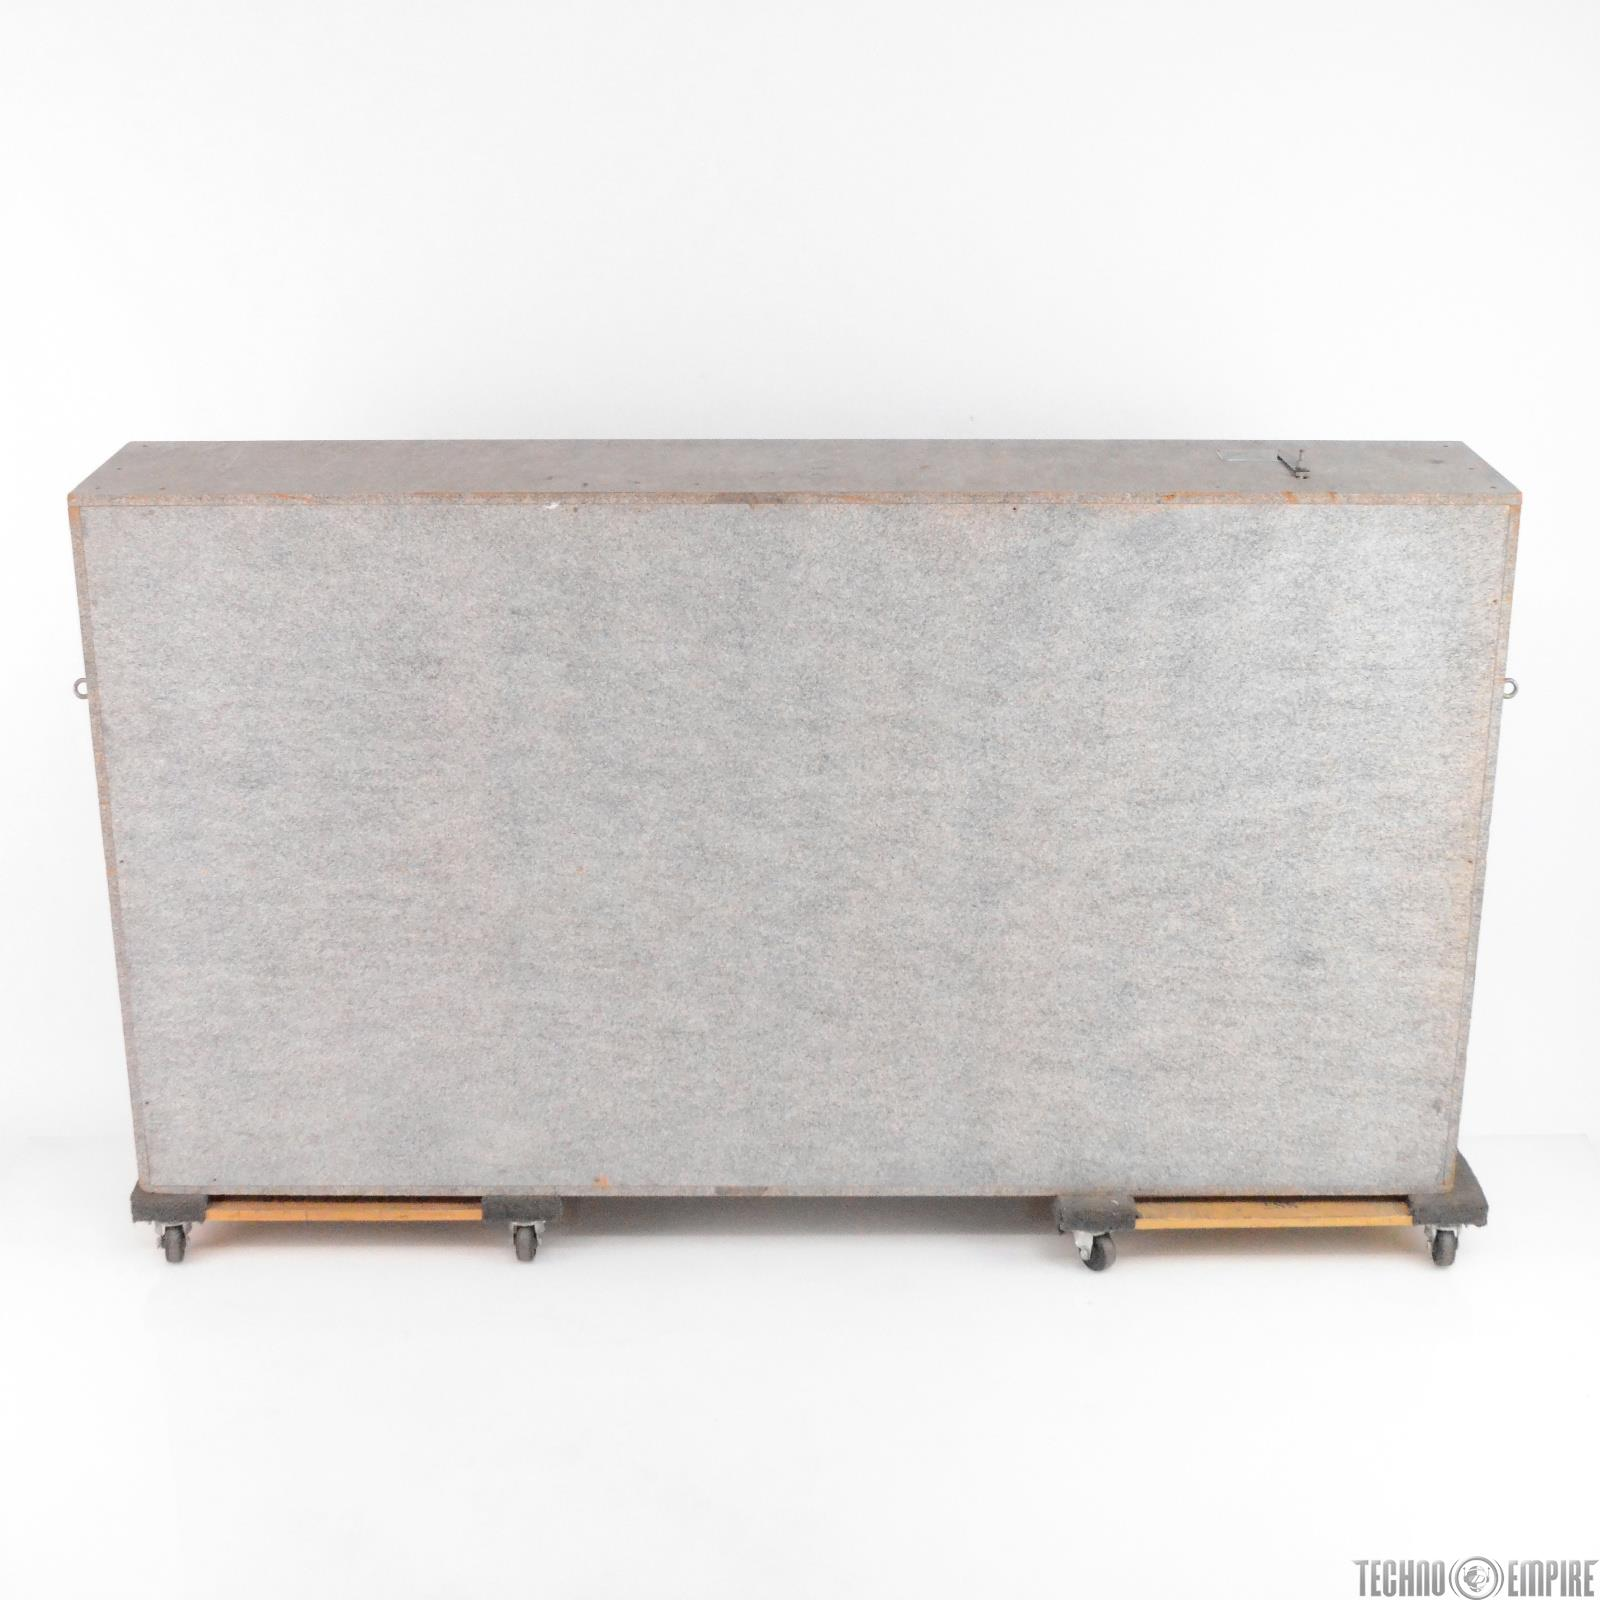 Programming Technologies Ecoplate I Stainless Steel Stereo Plate Reverb #30064